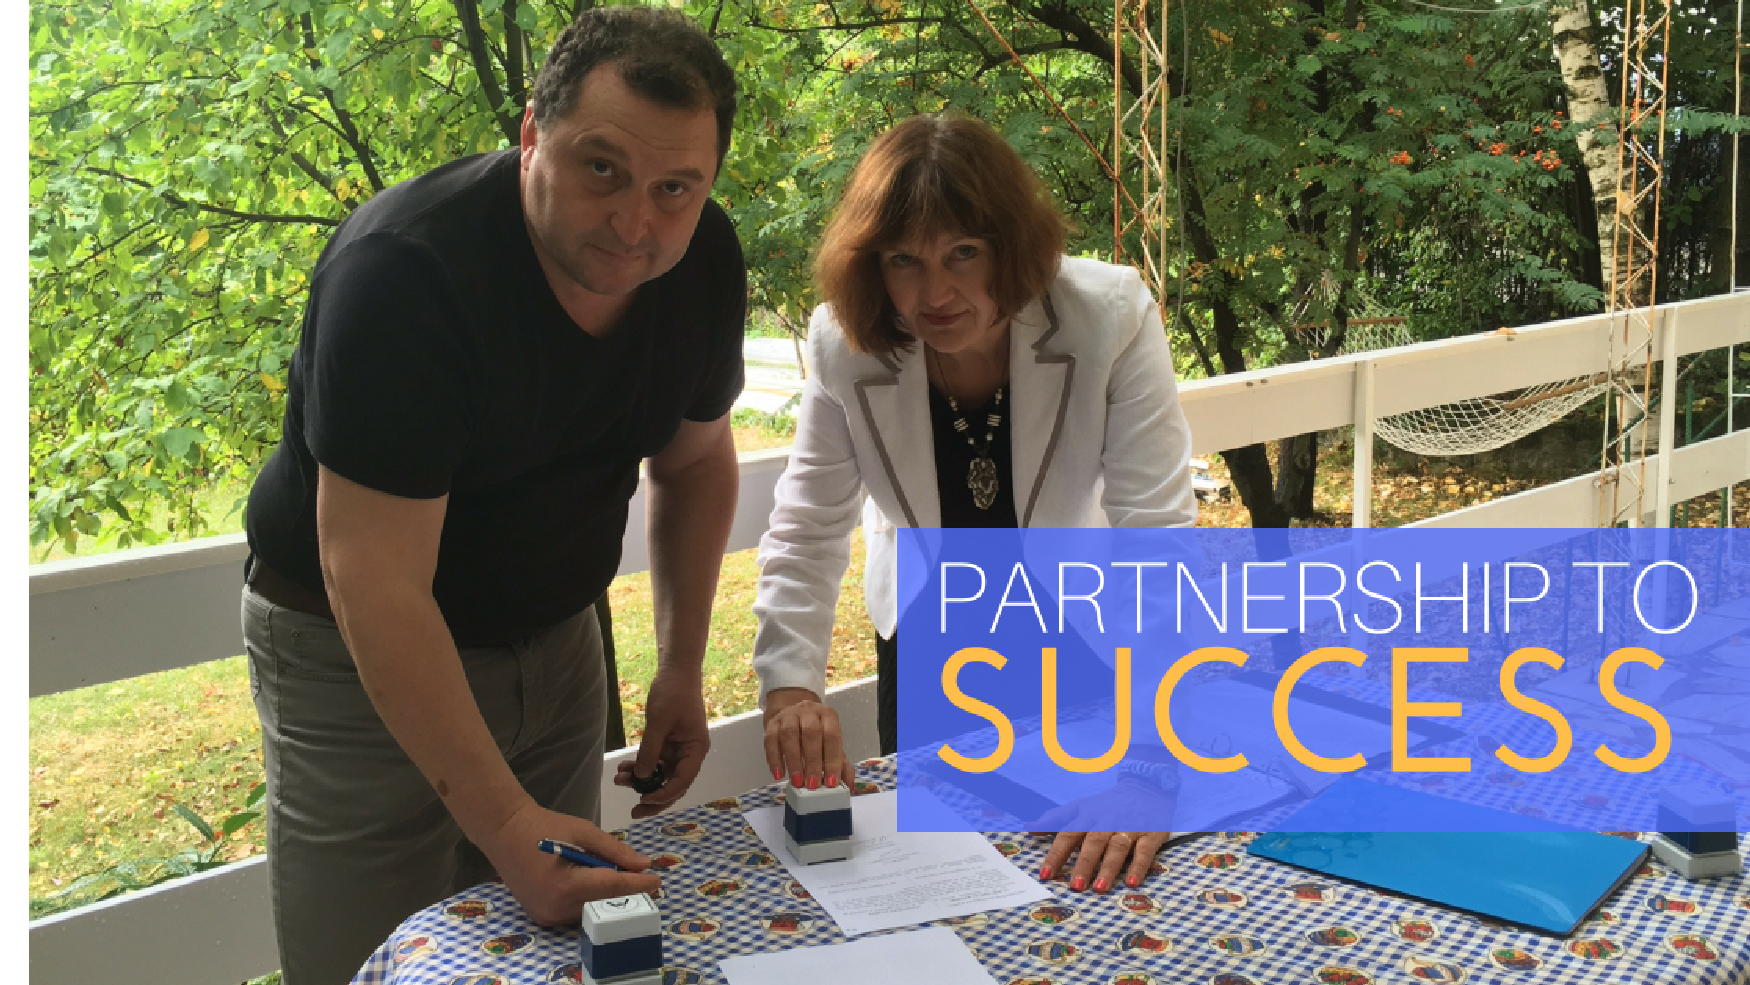 JPC LTD is committed to the long-term partnership and have a invested interest in ensuring Bulgarian Representative Agency is successful and continues to grow. A partnership to SUCCESS!